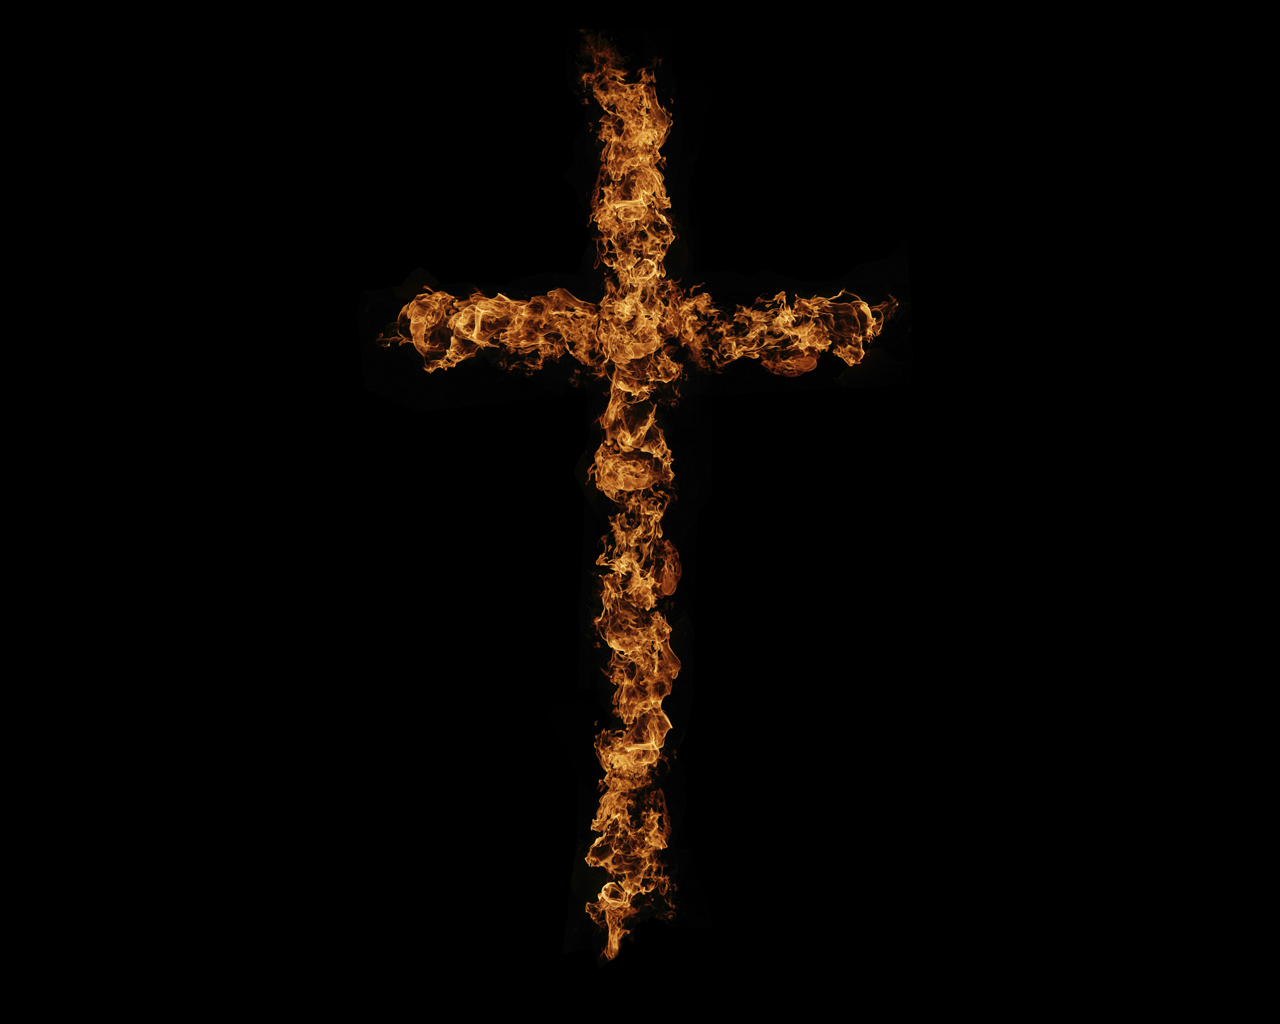 8 Christian Cross Wallpapers For Free Download